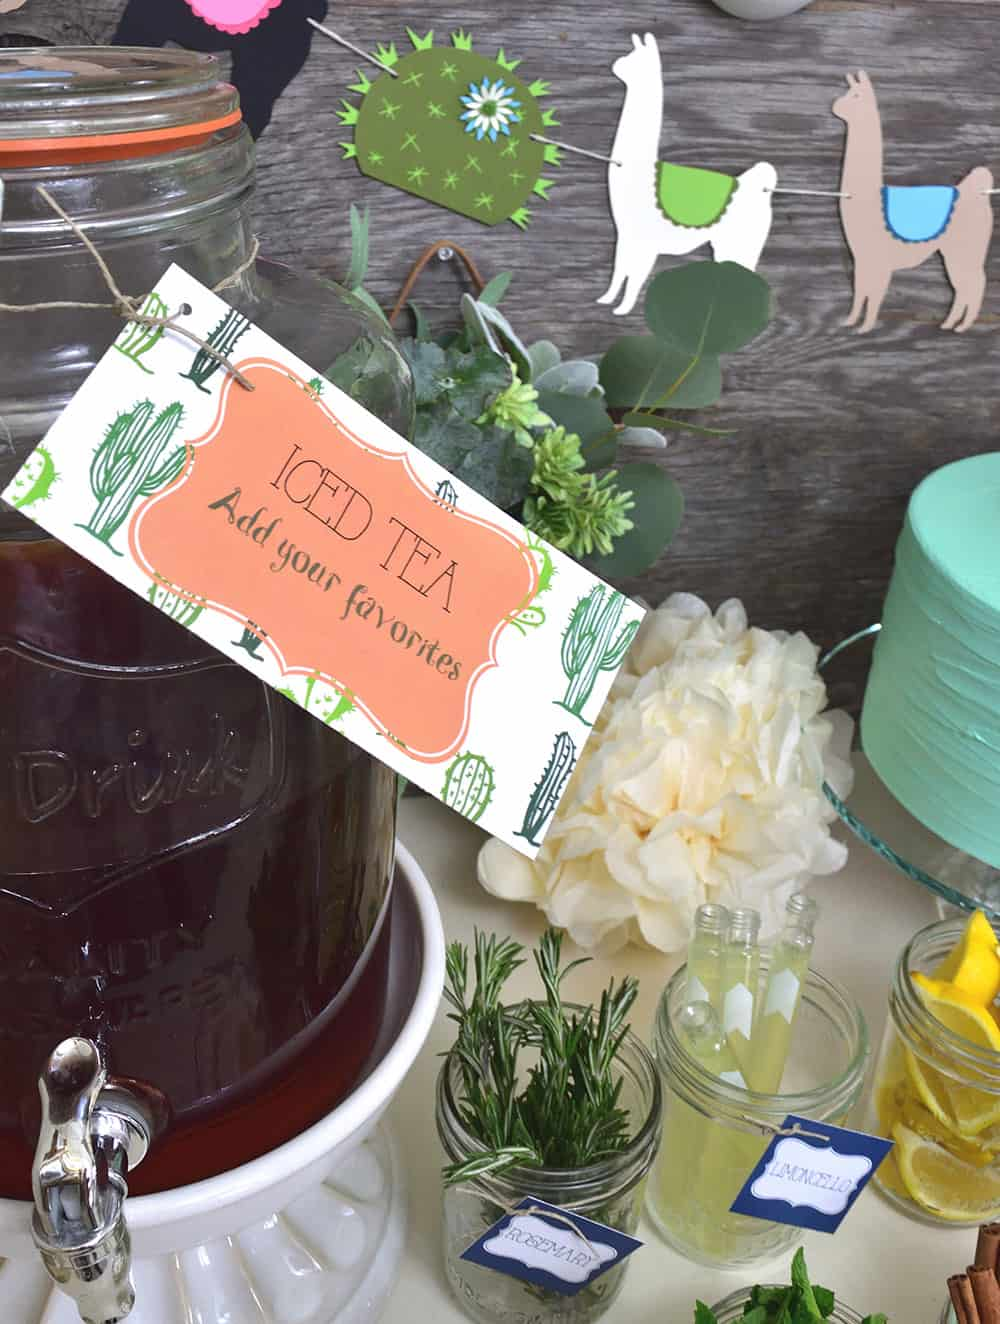 Iced tea served at a desert themed llama party